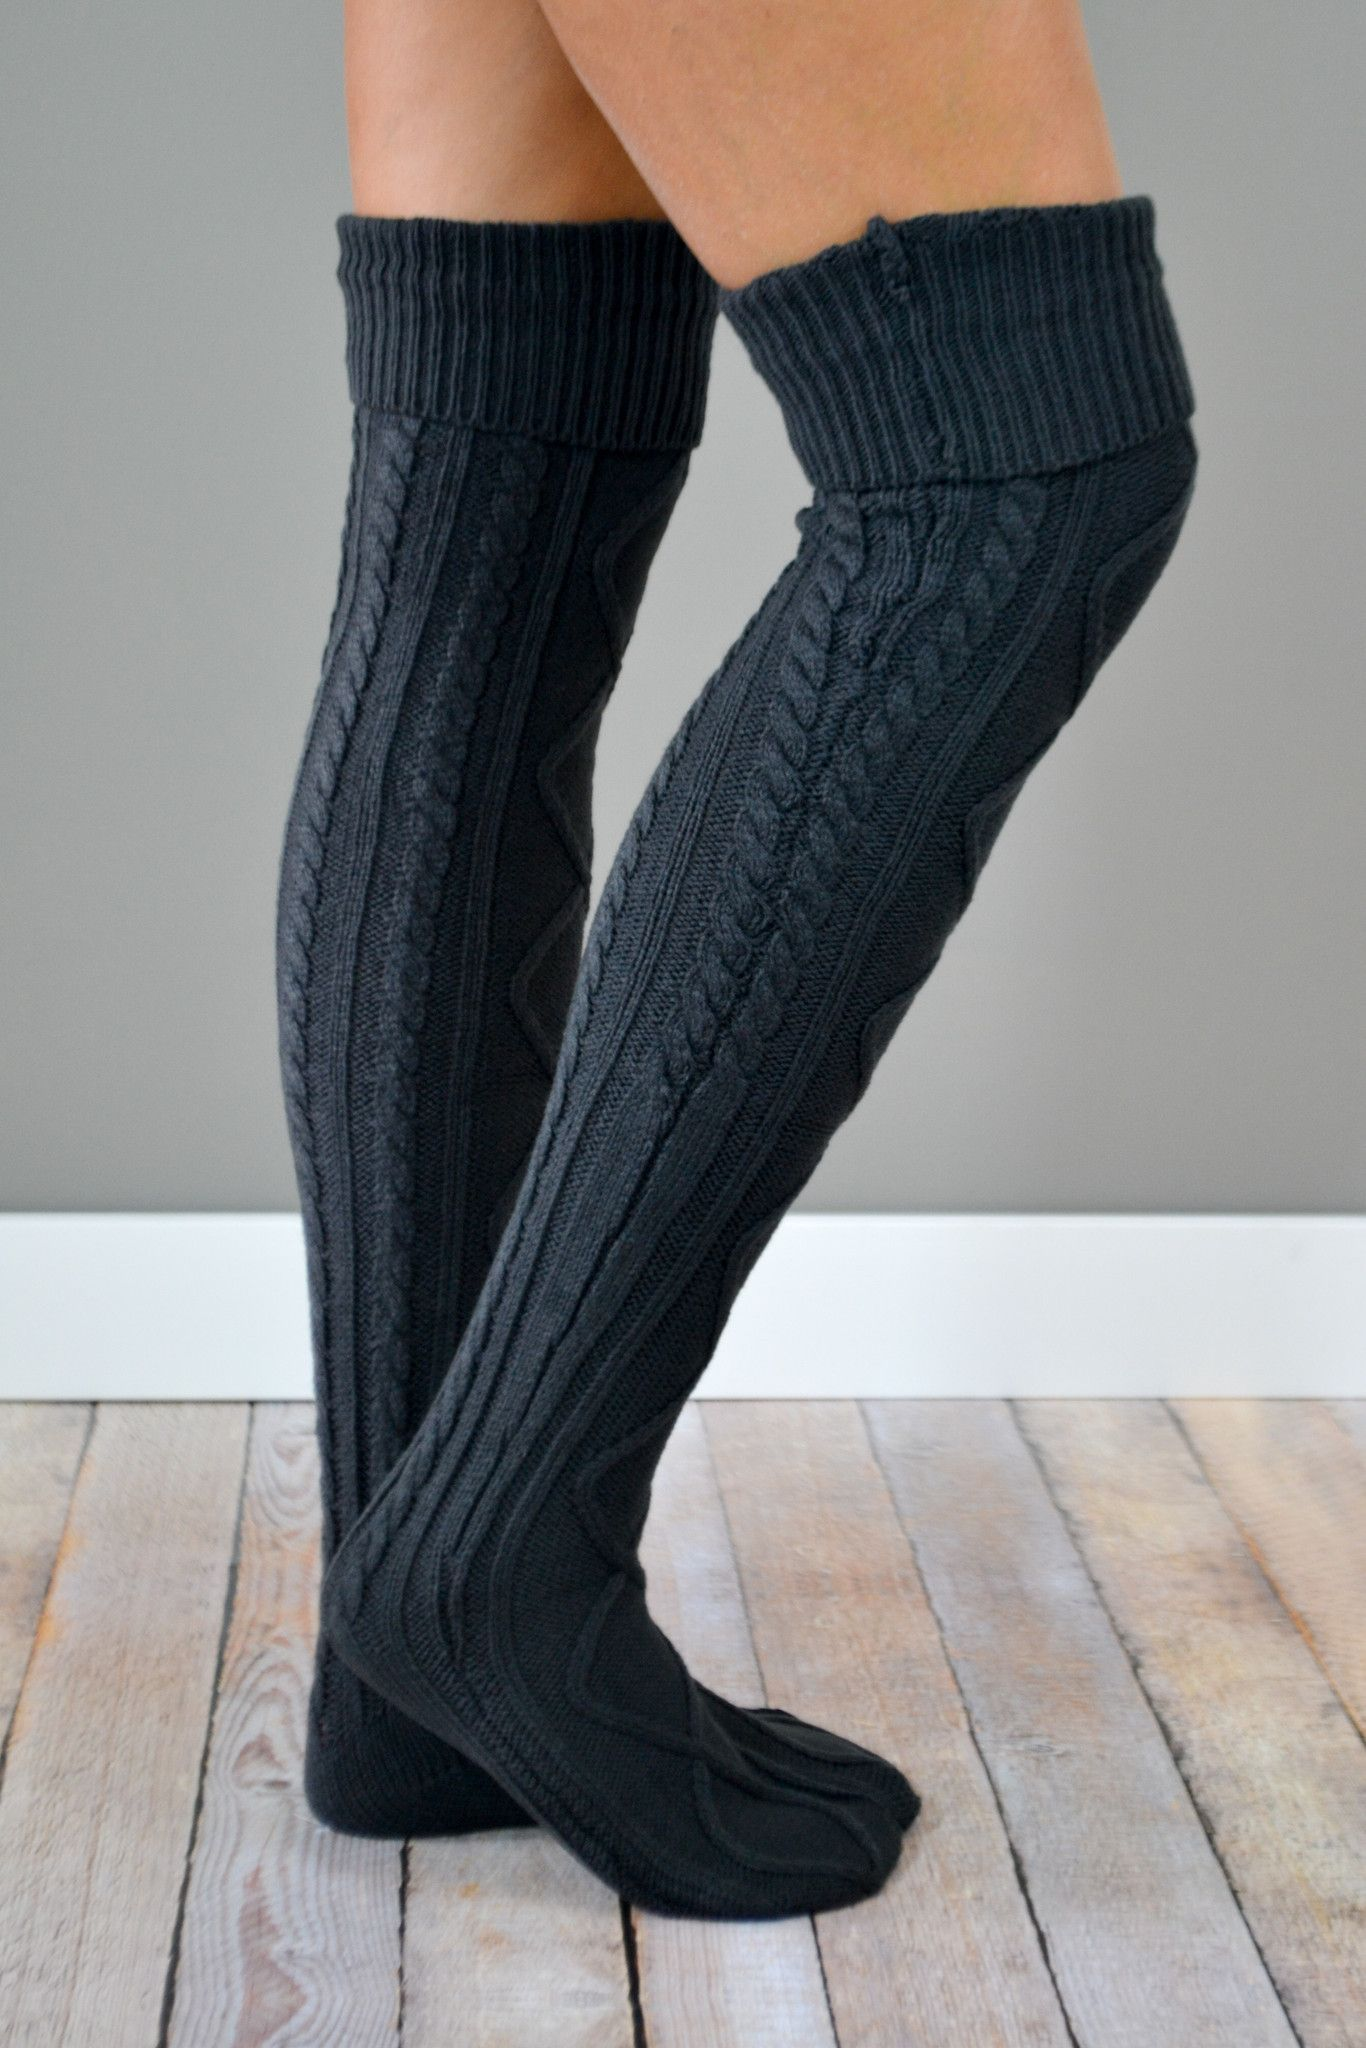 Charcoal Thick Cable Knit Boot Socks - Fast, Free Shipping ...